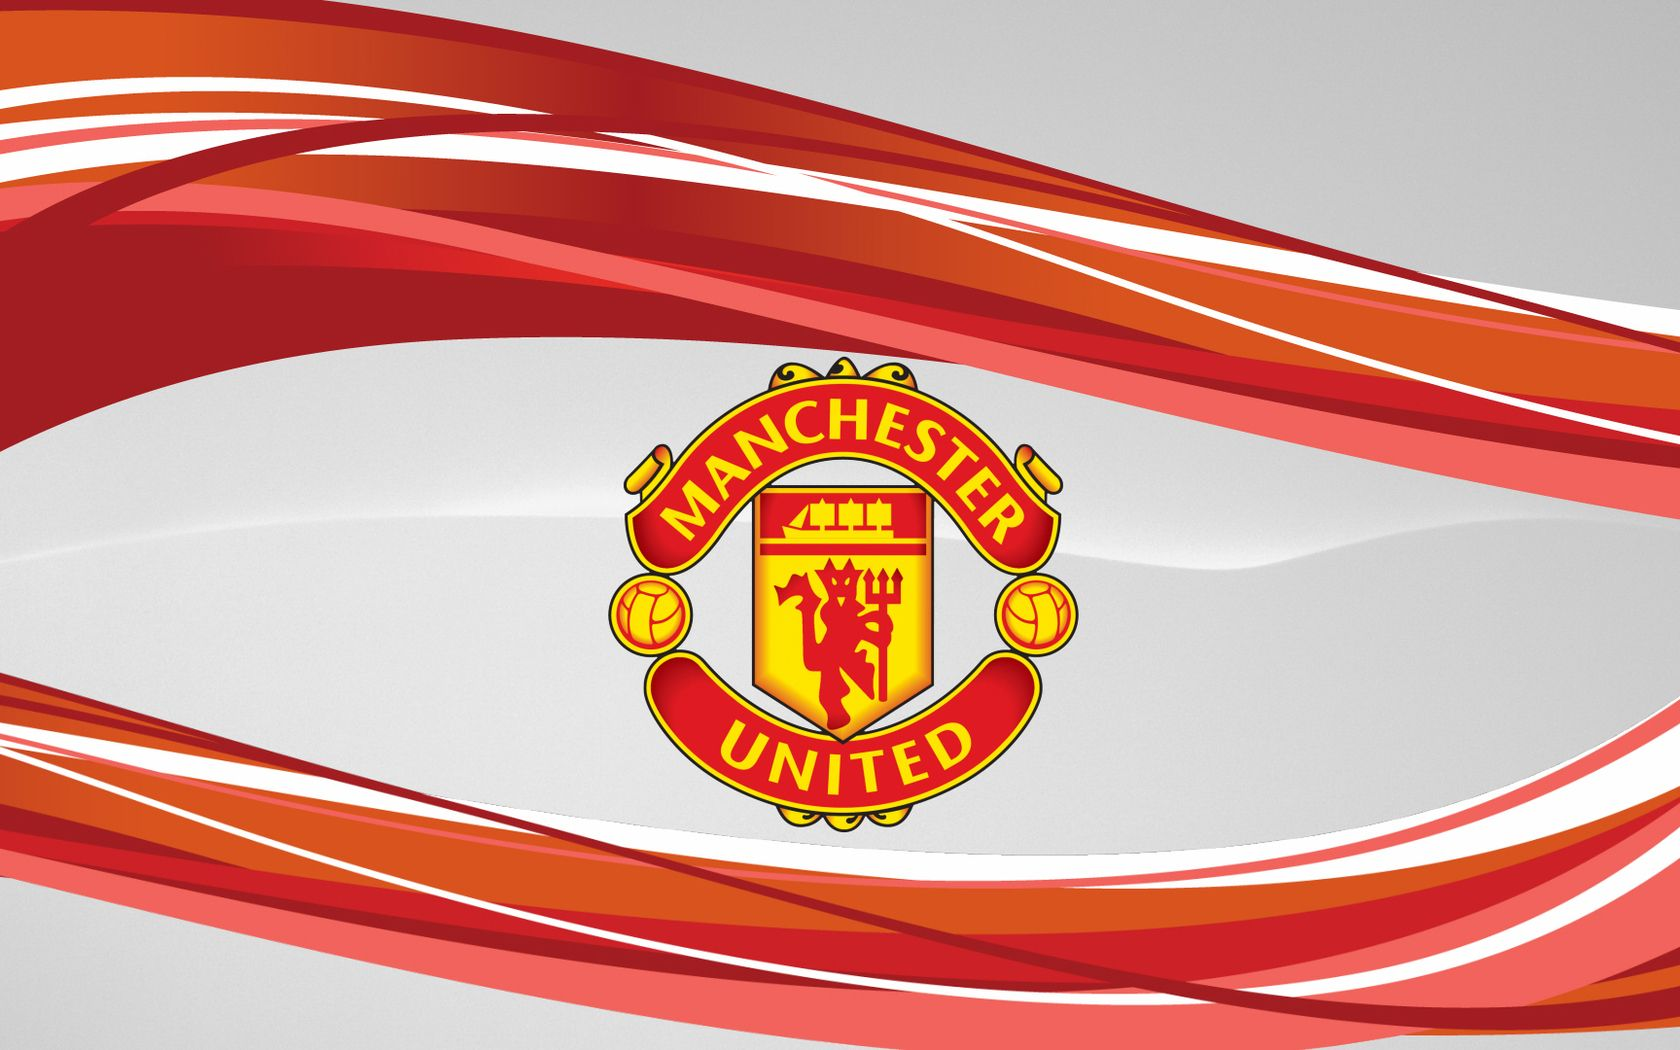 Mu Manchester United Football Hd Wallpaper Desktop